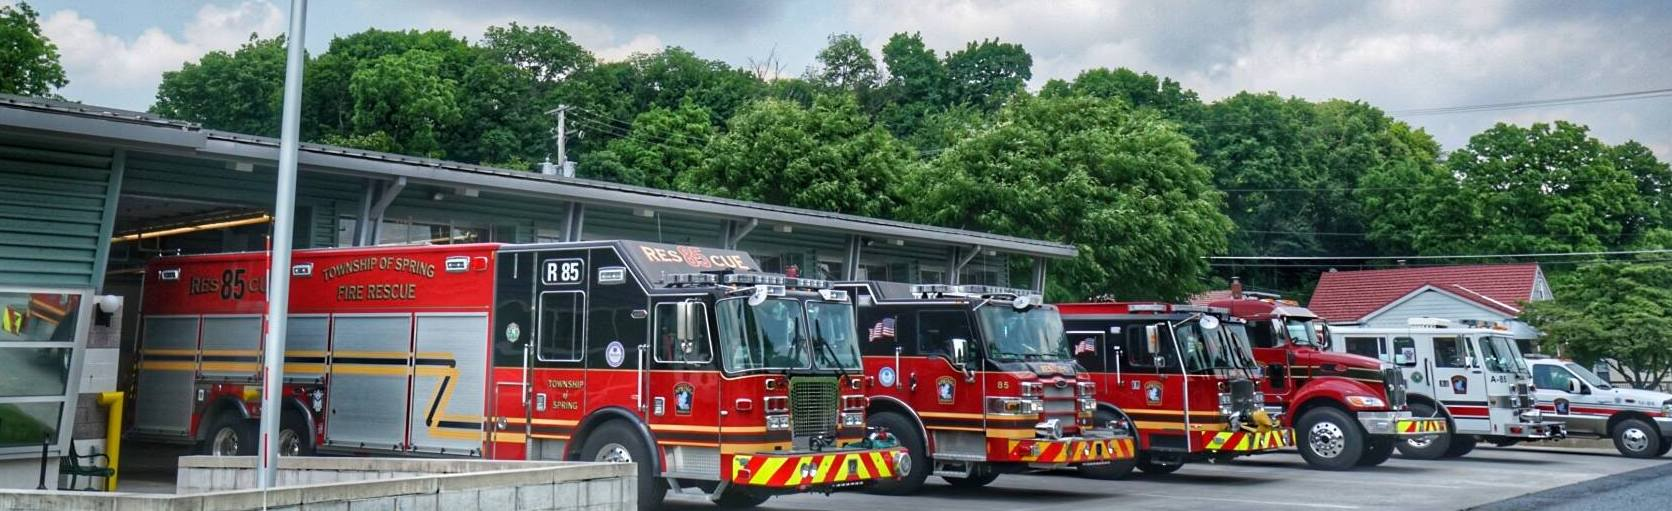 The Township of Spring in West Lawn PA, Equip Their Station with New Firehouse Recliners